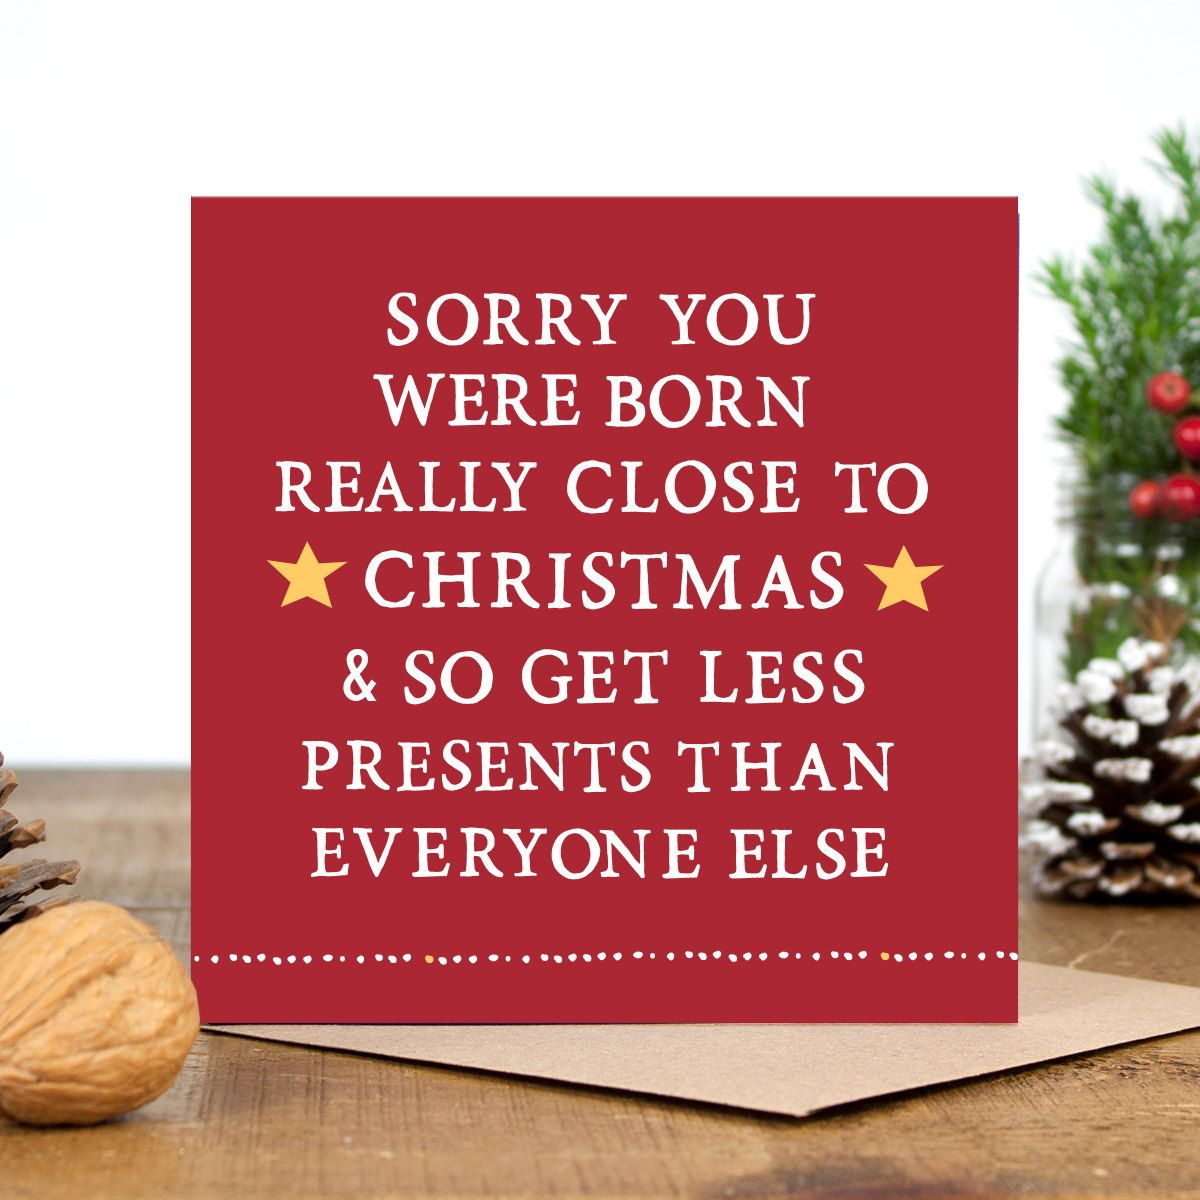 Funny birthday card funny christmas card alternative christmas funny christmas card funny birthday card by zoebrennancards kristyandbryce Image collections